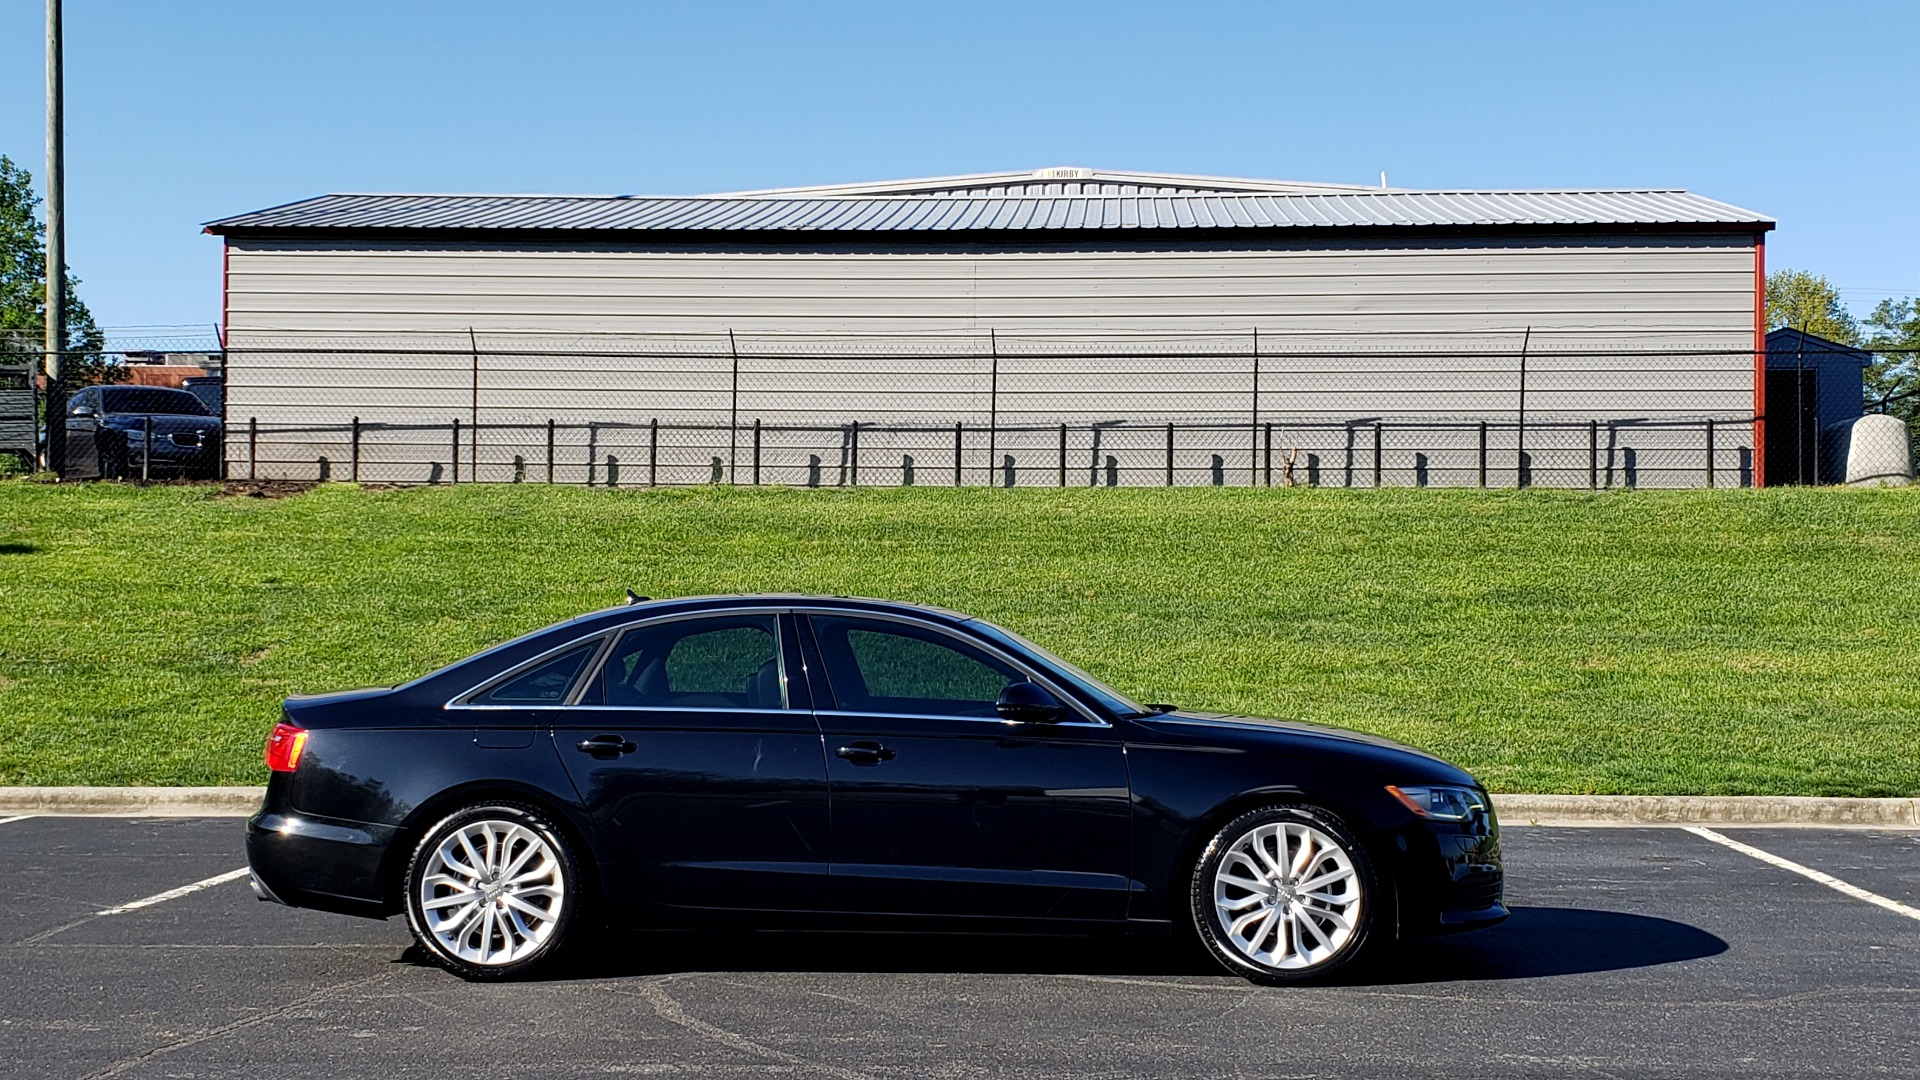 Used 2012 Audi A6 2.0T PREMIUM PLUS / NAV / SNRF / CVT TRANS / REARVIEW for sale Sold at Formula Imports in Charlotte NC 28227 10